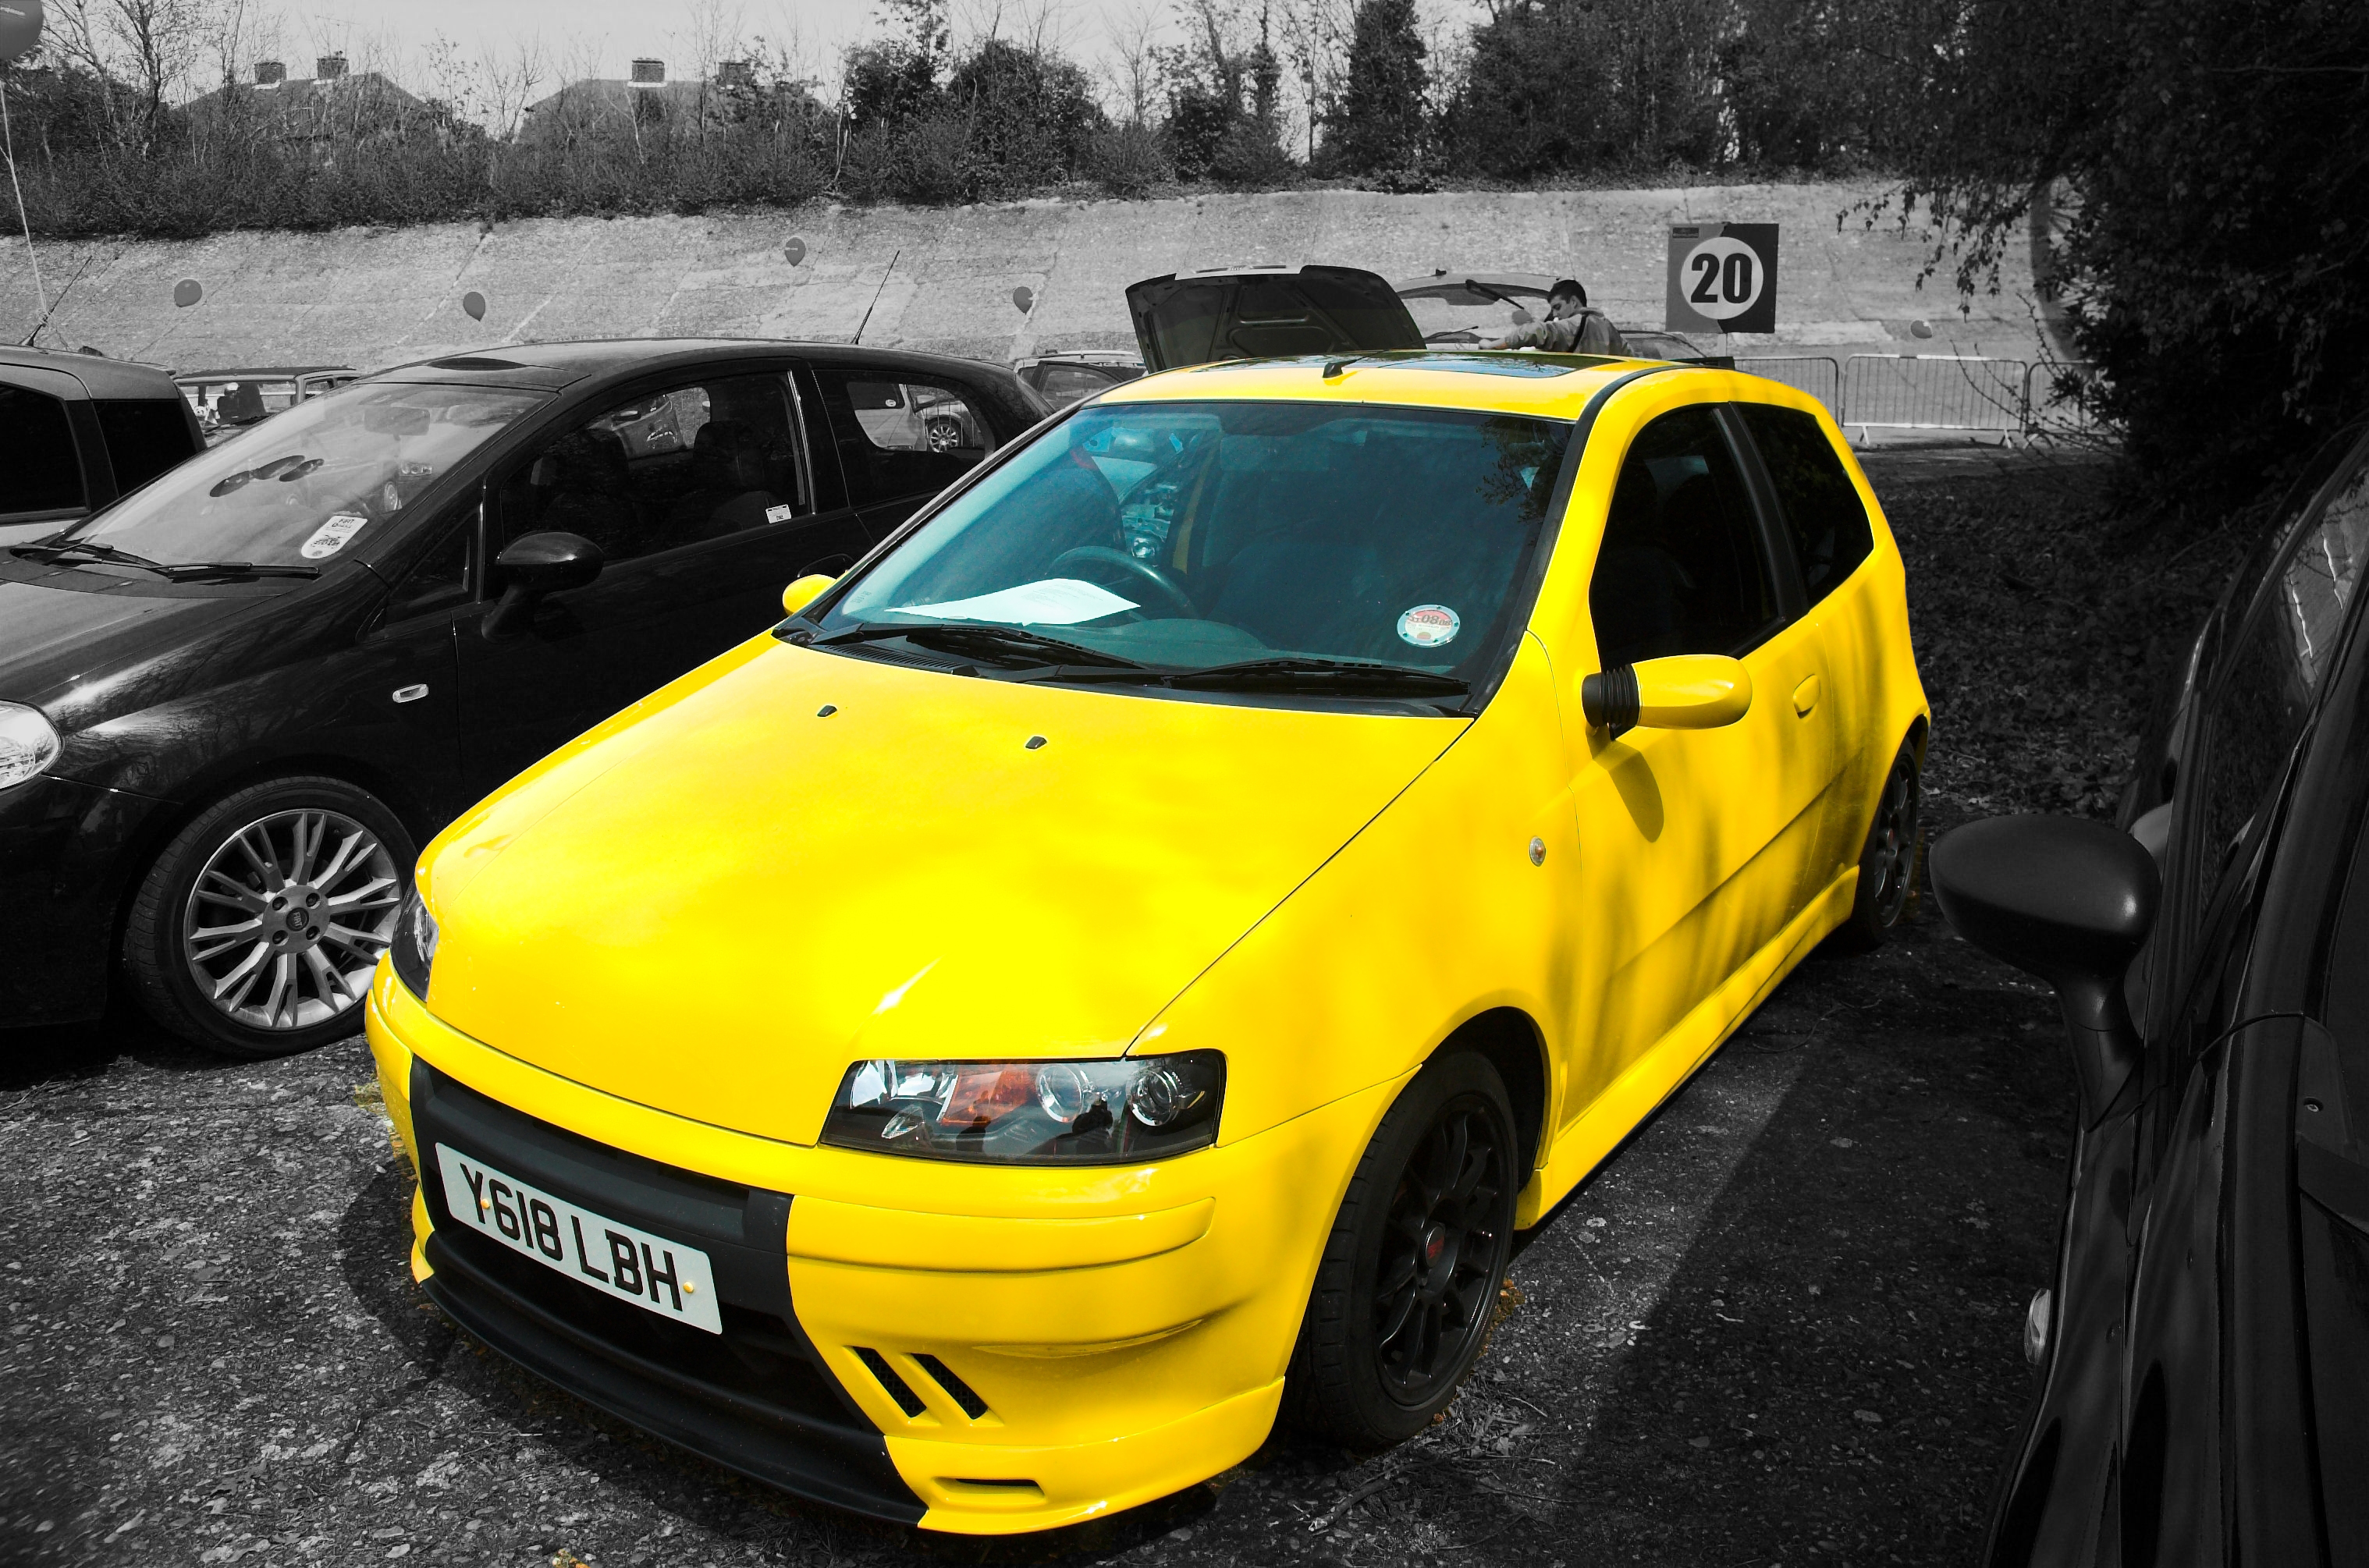 fiat punto sporting html with 156901 Black Gunmetal Alloys Yellow Mk2 Sporting on Troc echange fiat punto cabriolet tuning Annonce 595887 moreover Fiat additionally Amortecedor Punto further File Fiat Cinquecento front 20071031 besides Fiat Punto 2013 Tem Facelift E Precos.